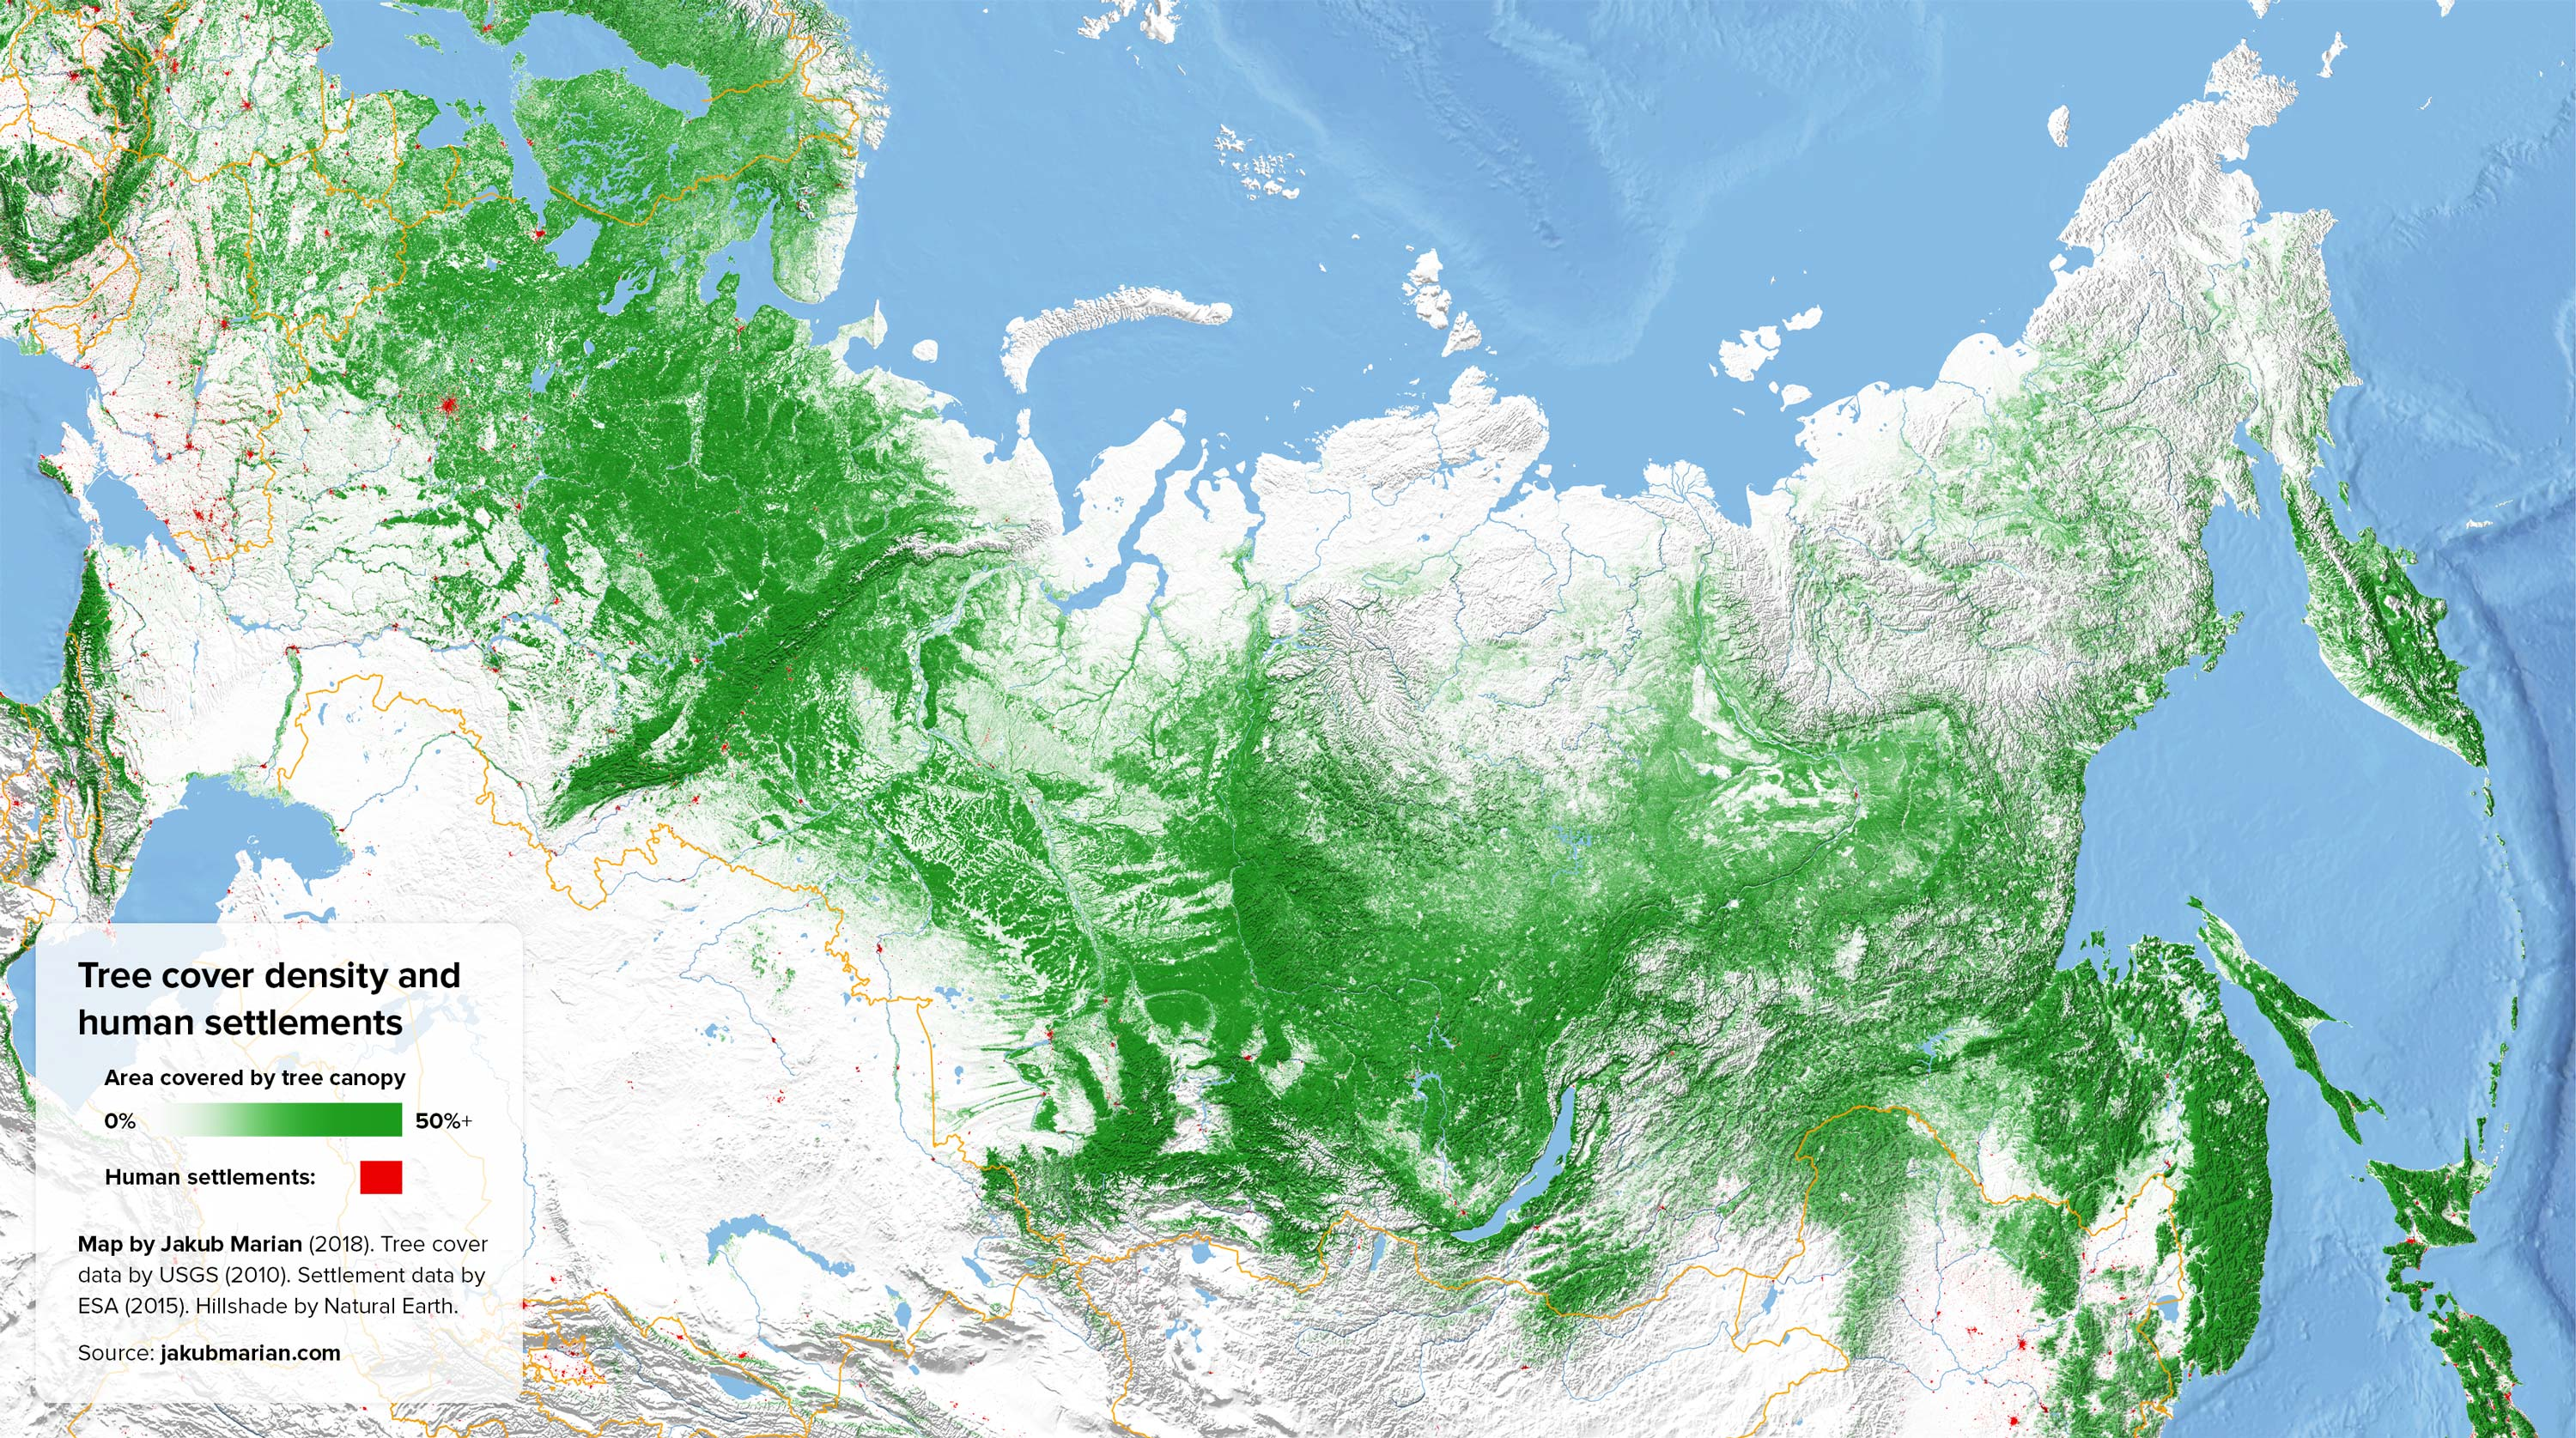 Tree cover density and human settlements of Russia